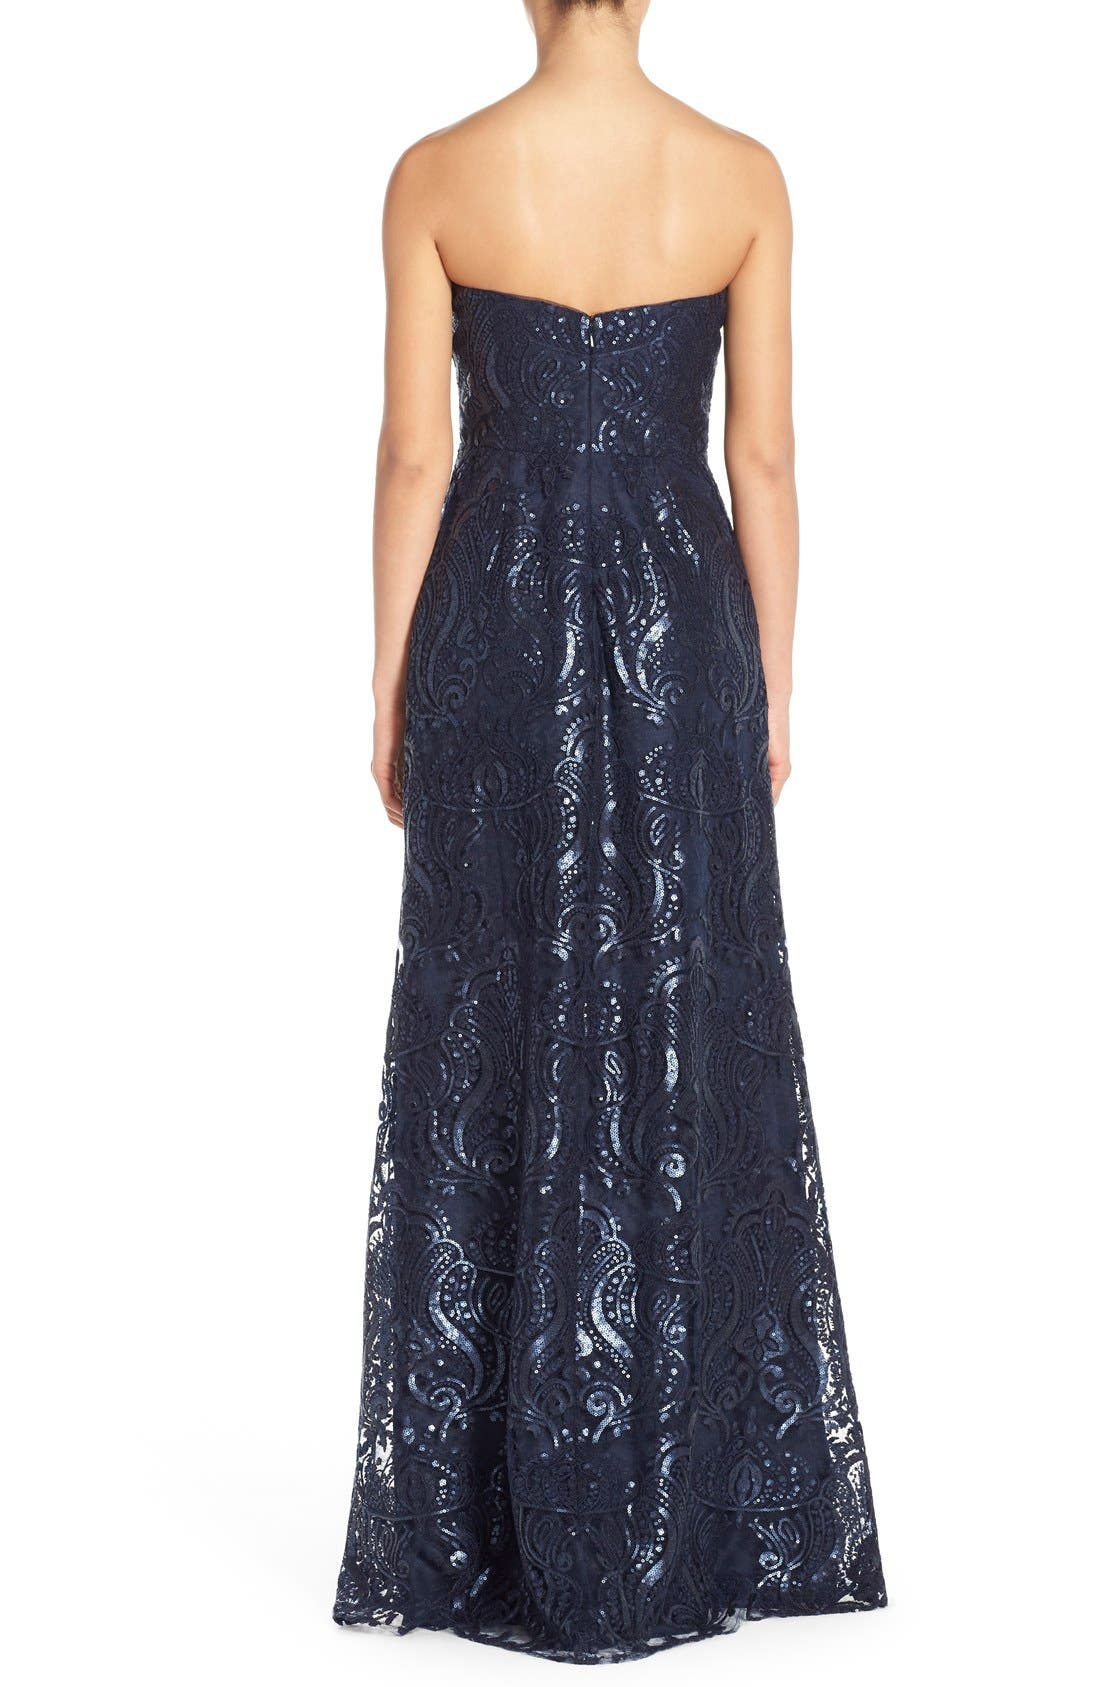 Sadie Sequin Lace Strapless A-Line Gown,                             Alternate thumbnail 2, color,                             410